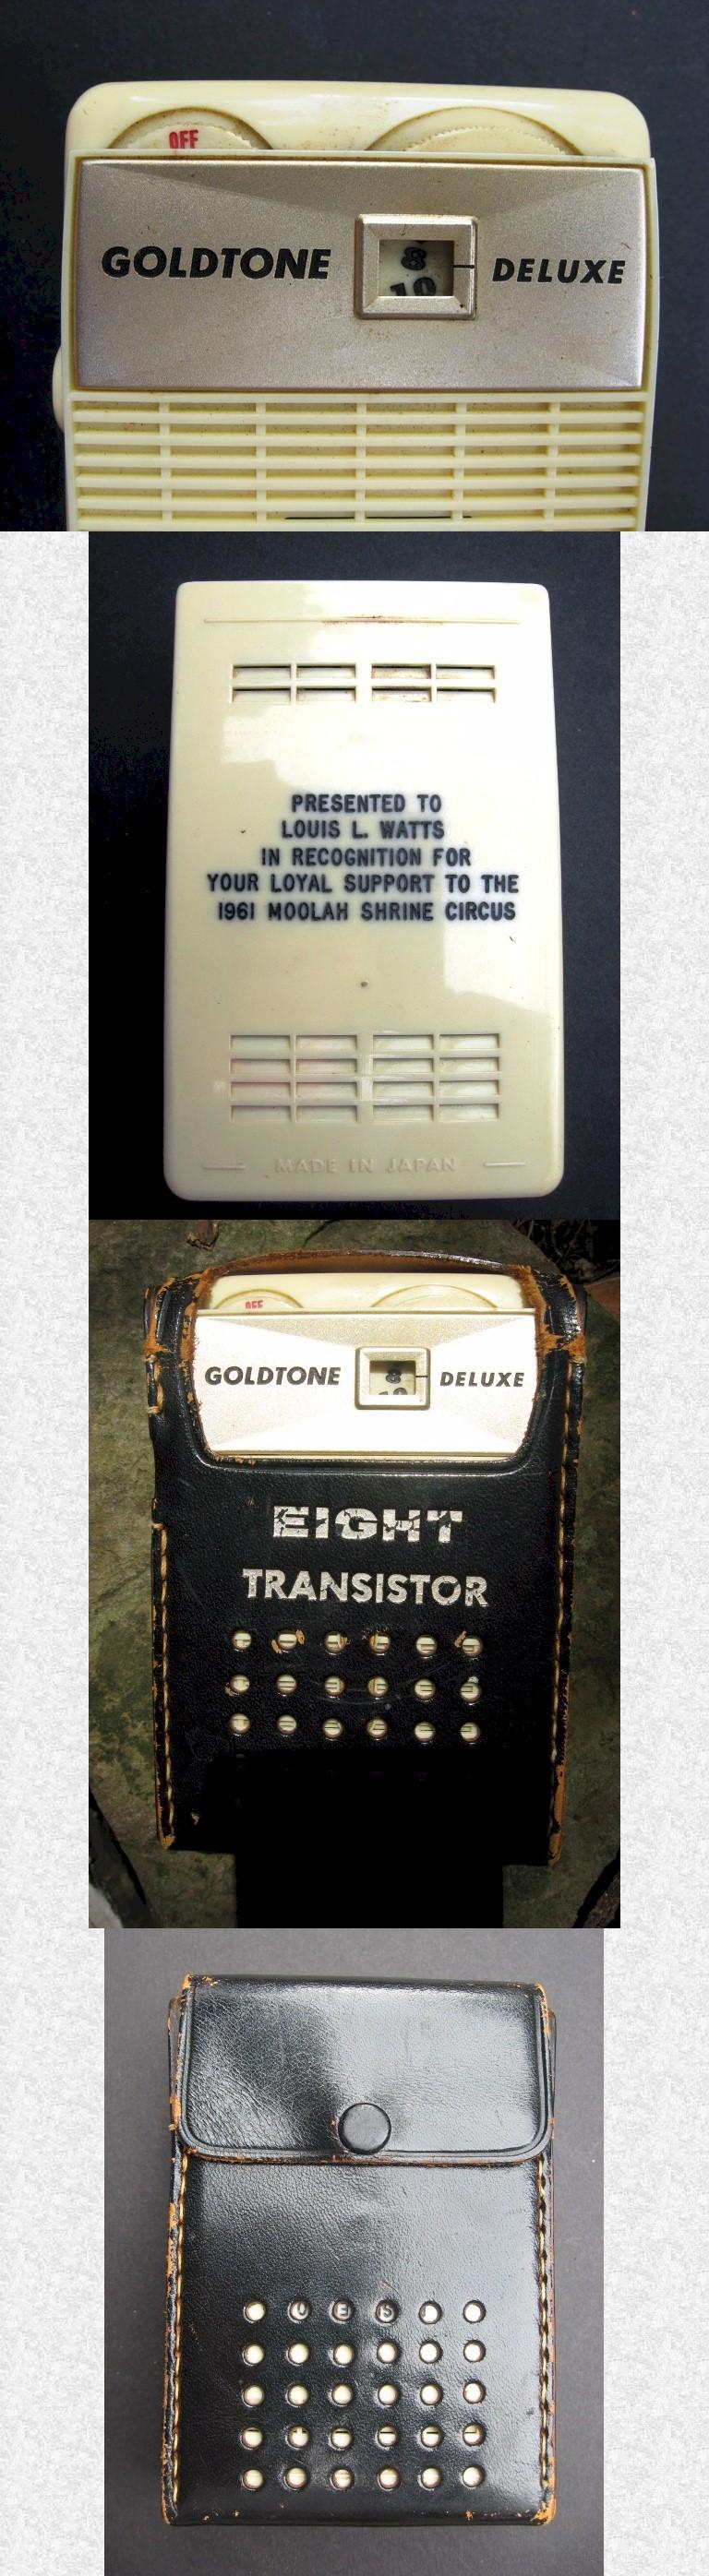 Goldtone Deluxe Pocket Transistor (1960)